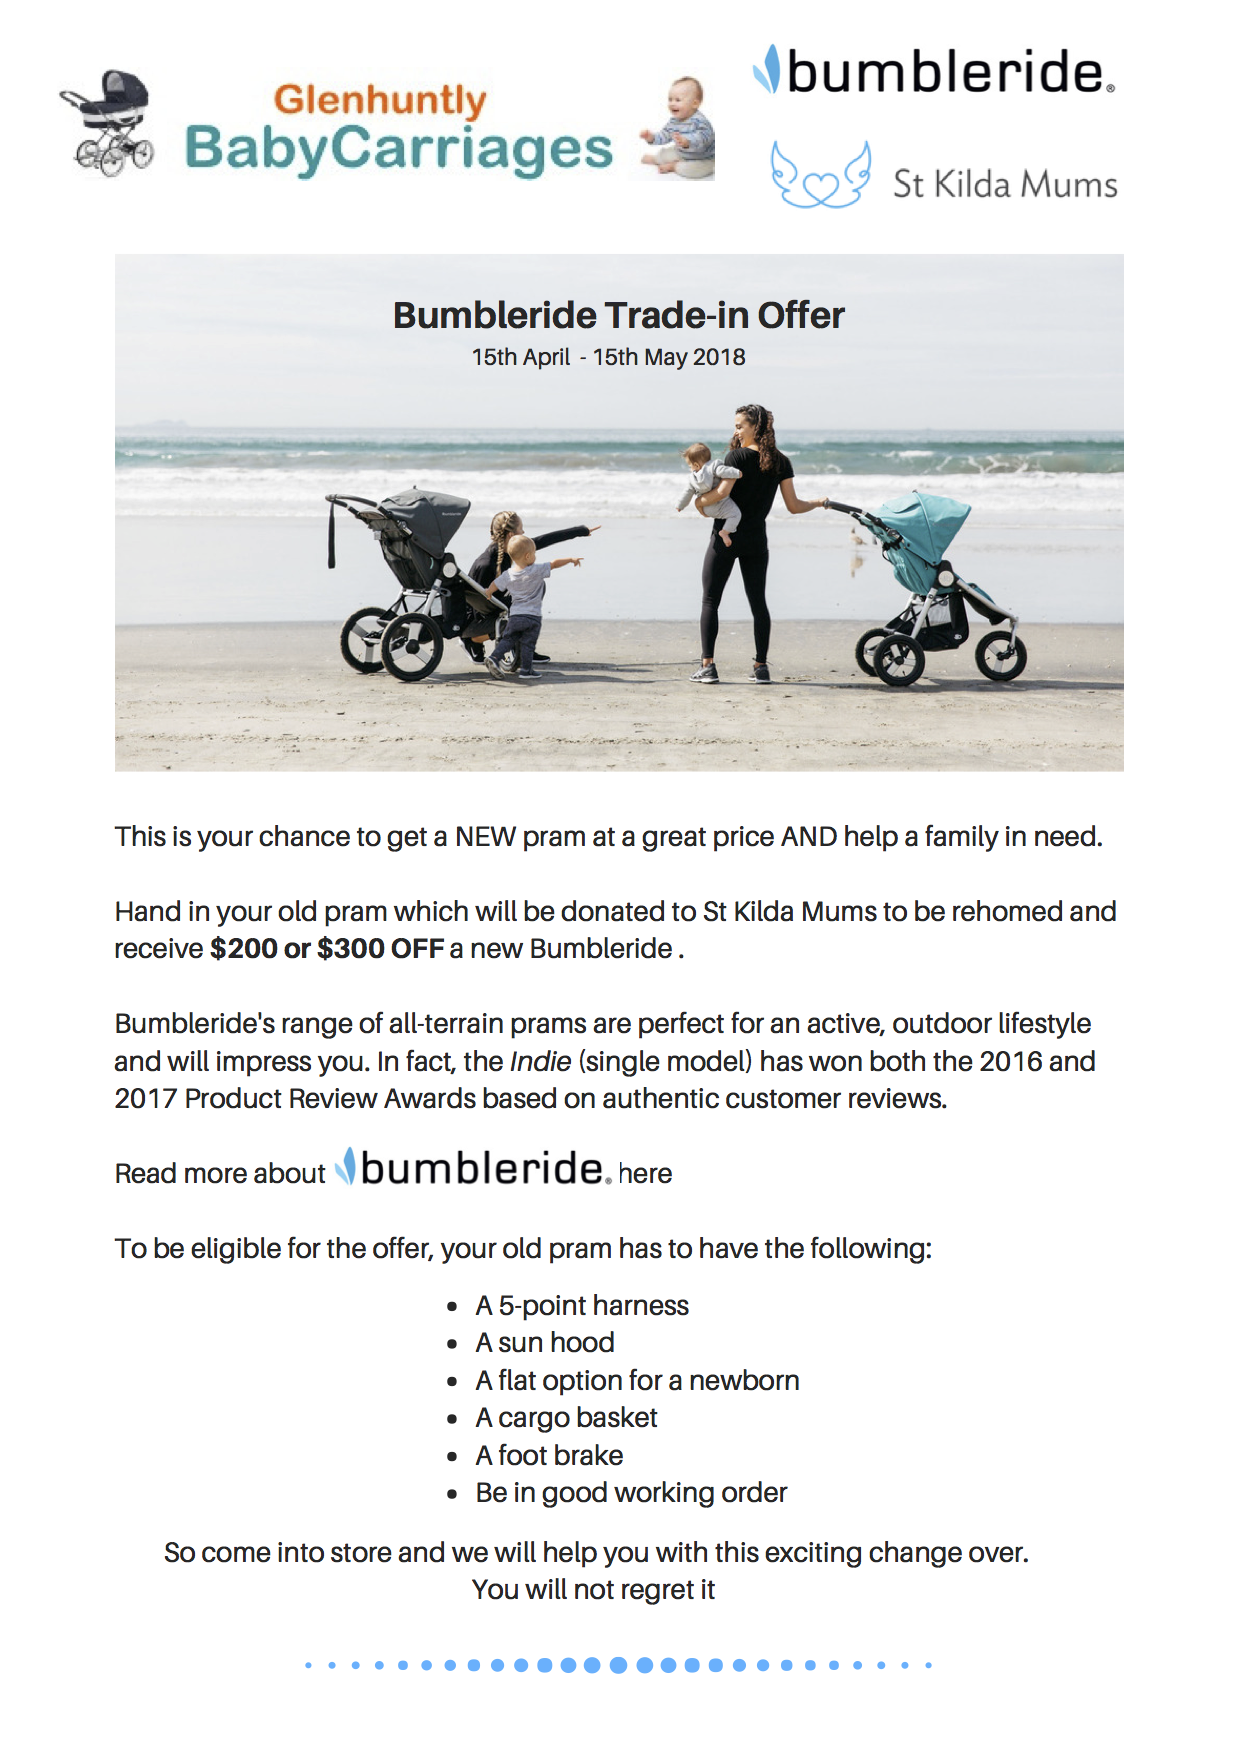 bumbleride-trade-in-offer.glen-huntly.png